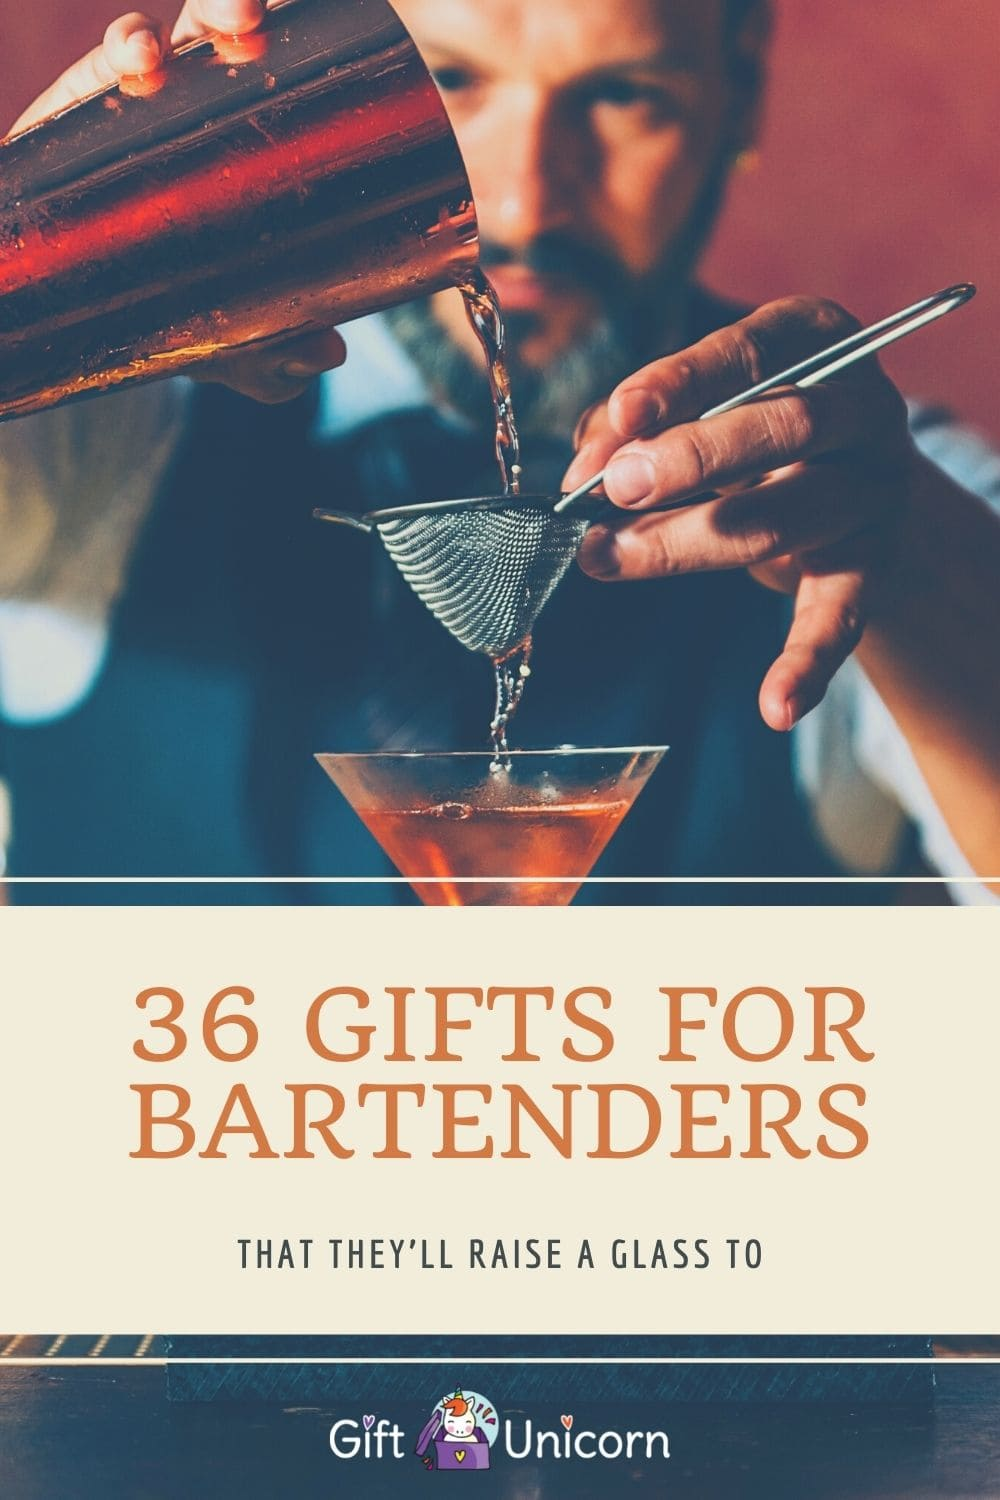 36 Gifts for Bartenders That They'll Raise a Glass To - pinterest pin image